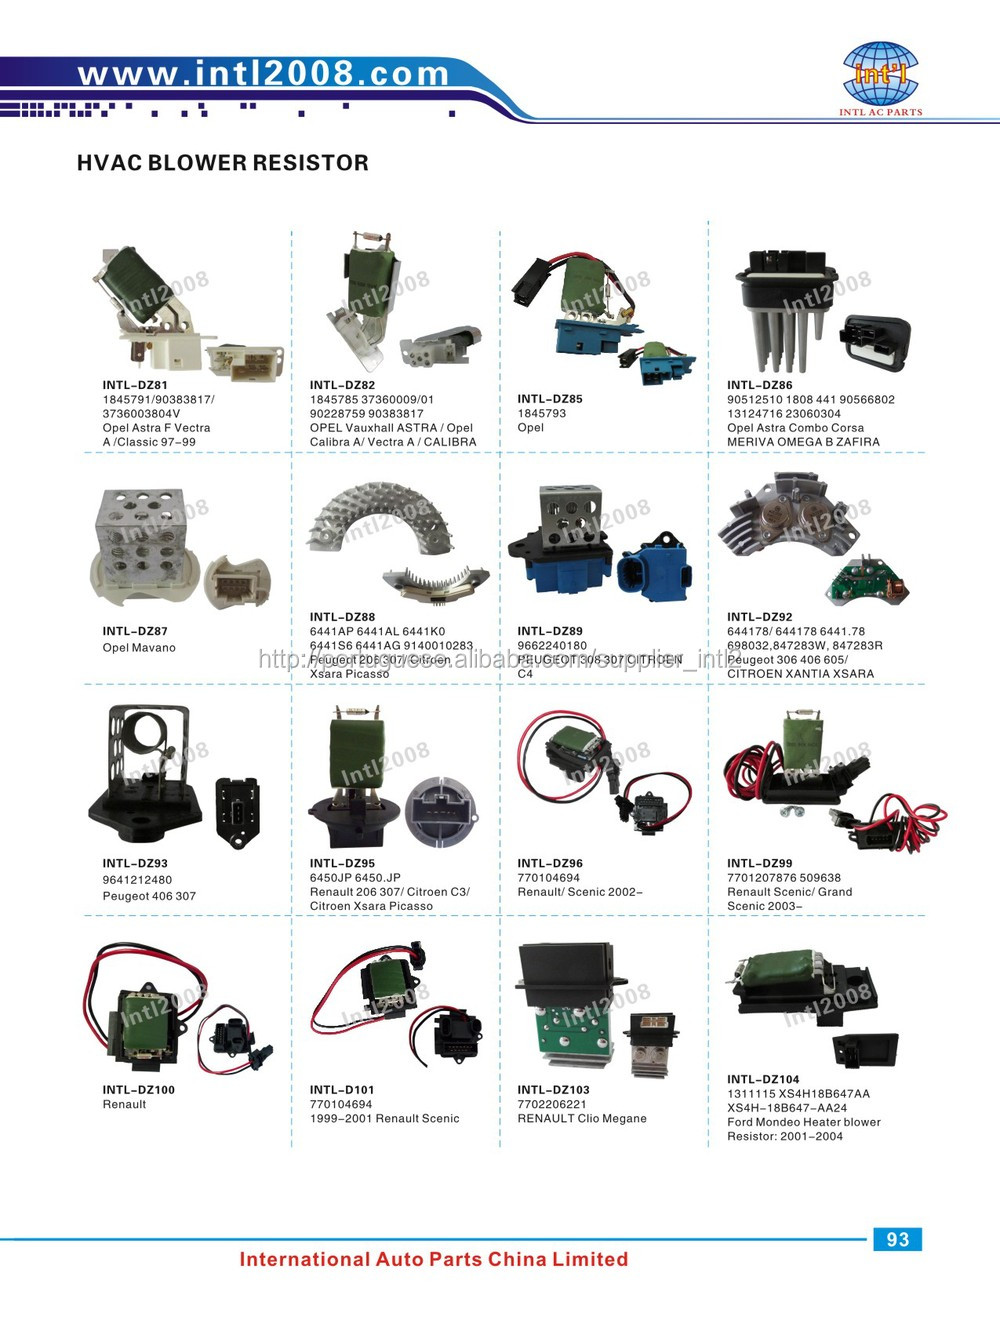 Cadillac Escalade 2005 Hvac Wiring Diagram additionally T13779885 Will find ecm relay vw polo vivo in addition 2002 Chevrolet Chevy Impala Wiring furthermore Hayden Electric Fan Wiring Diagram besides Lexus Es 350 Oxygen Sensor Location. on peugeot 206 wiring diagram cooling fan